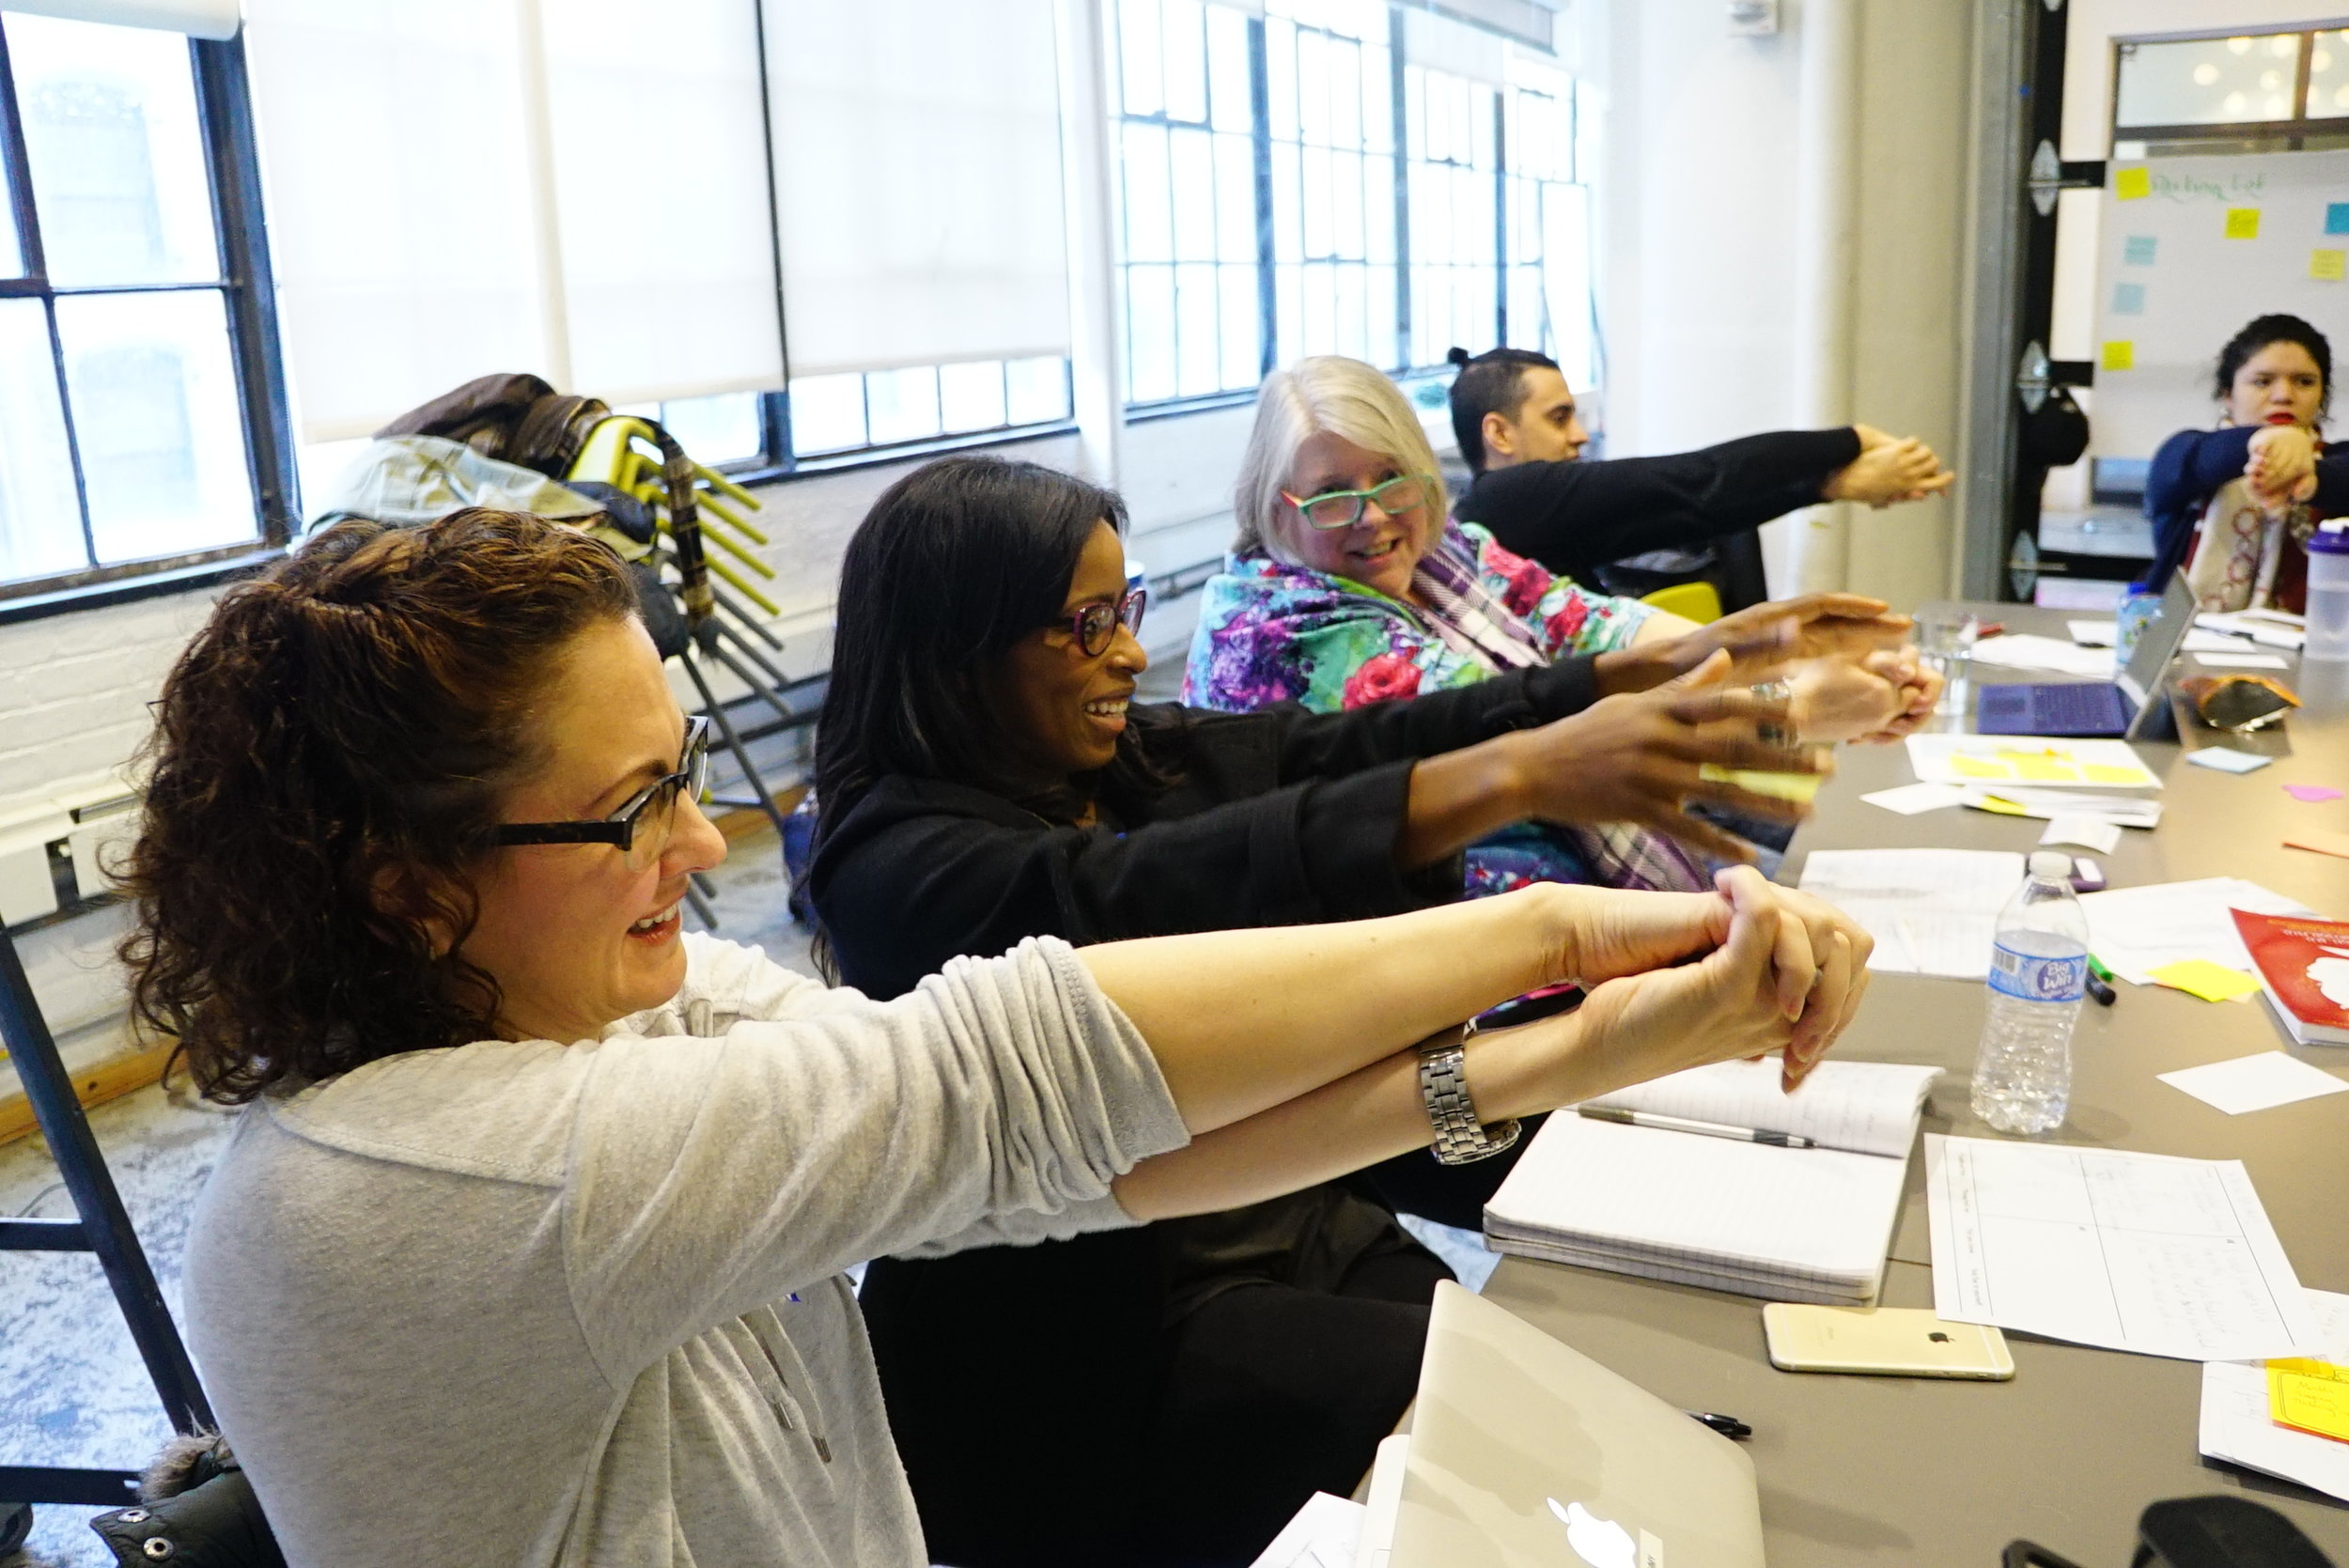 Participants smile as they repeatedly fail at this activity!